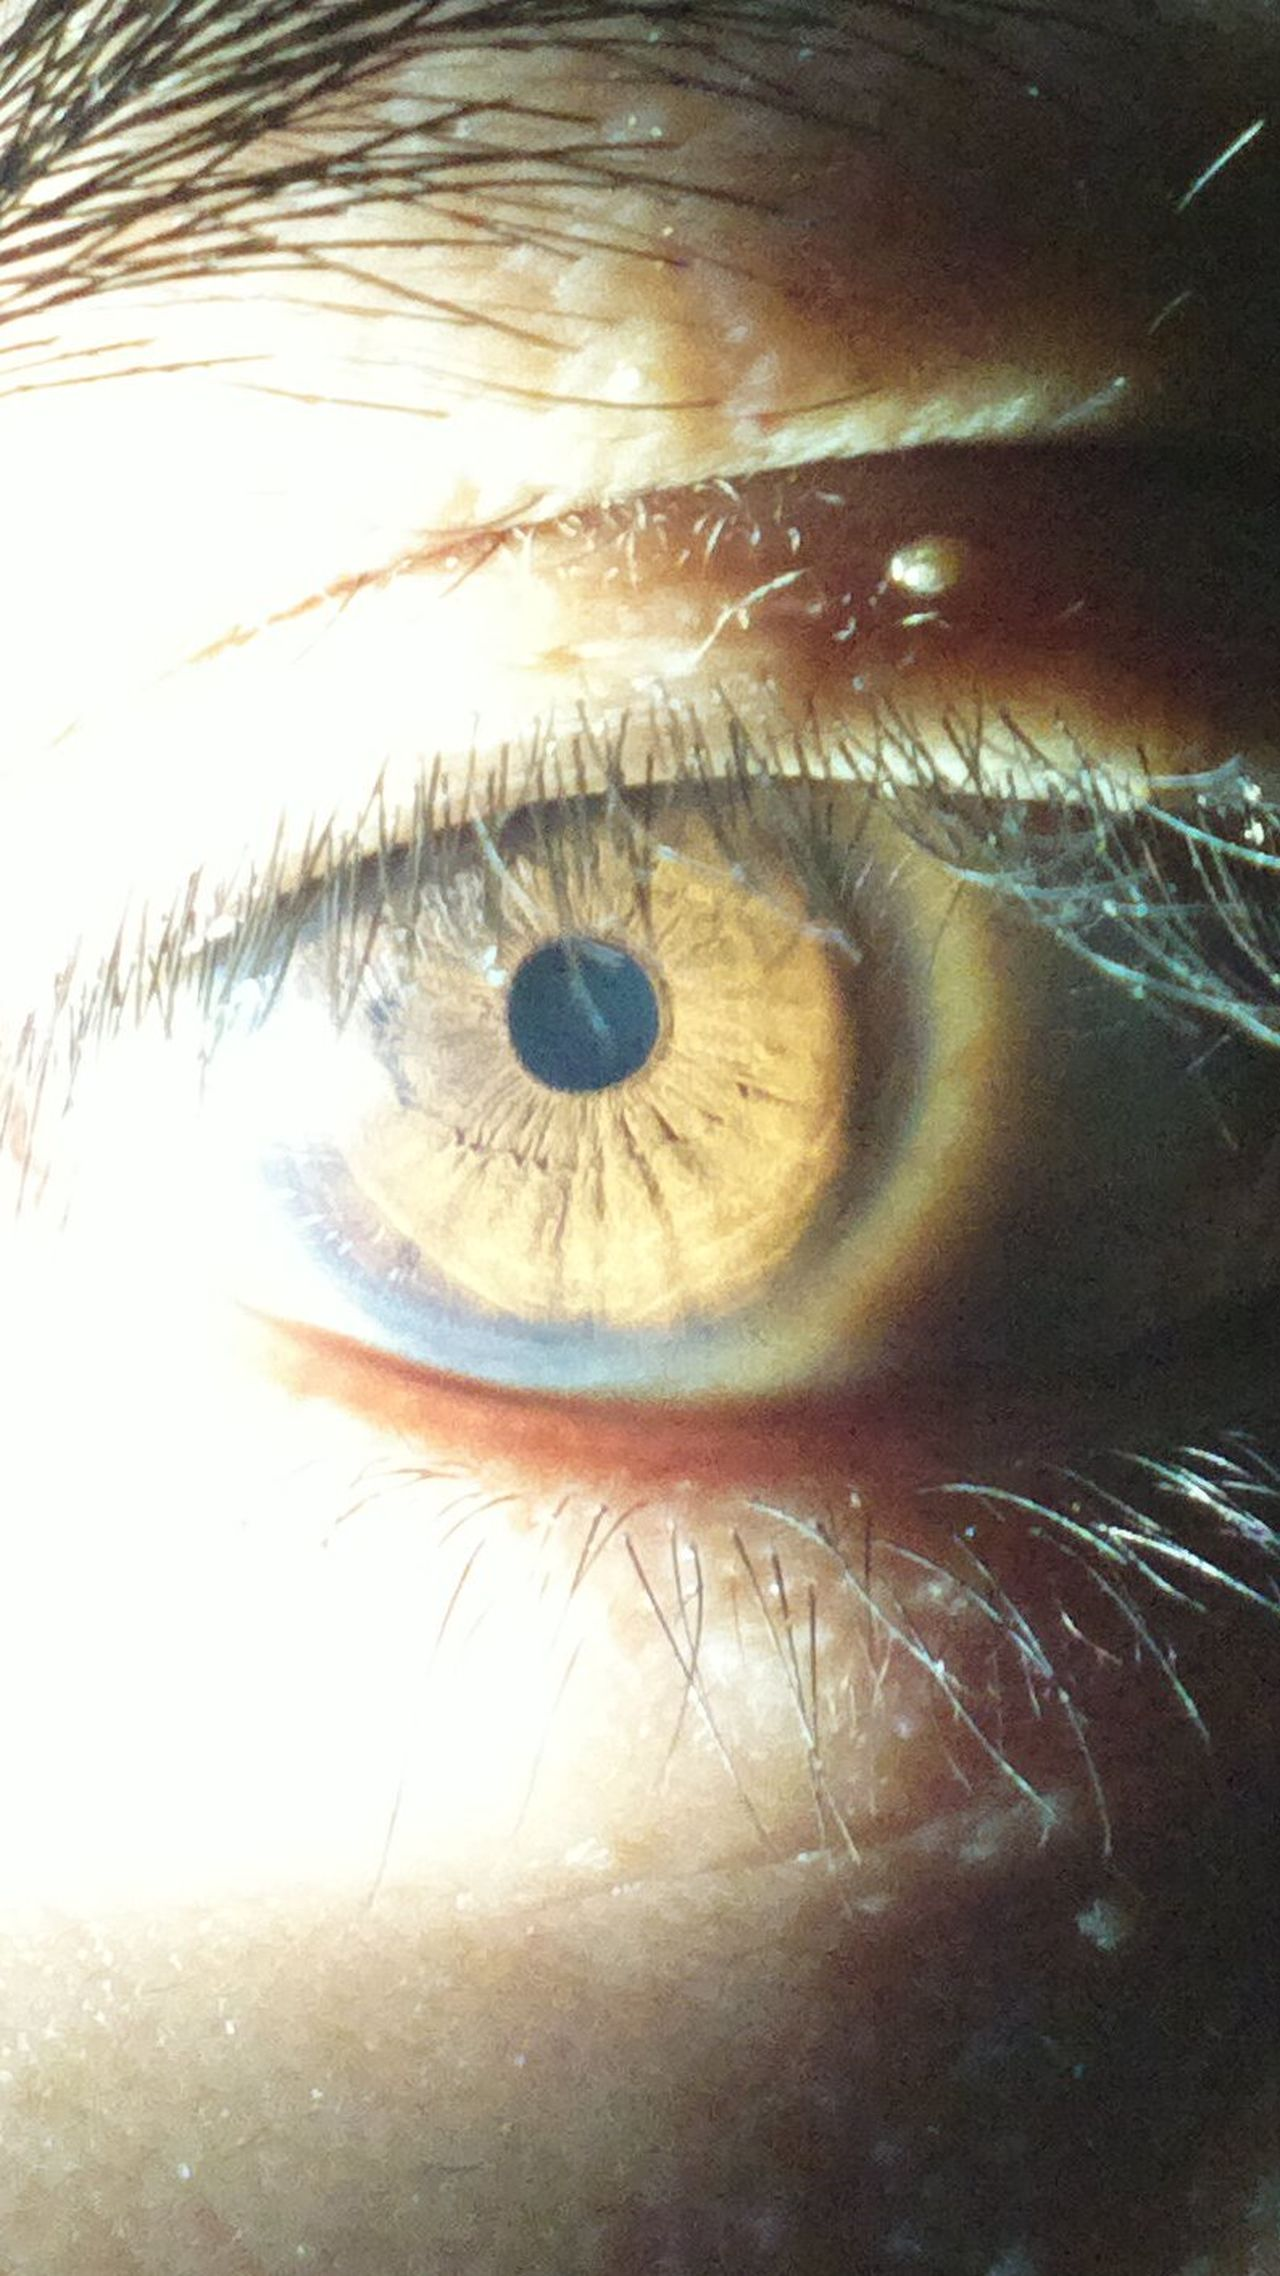 Adult Adults Only Close-up Day Eyeball Eyelash Eyesight Human Body Part Human Eye Indoors  One Person People Real People Sensory Perception Eyeem Philippines